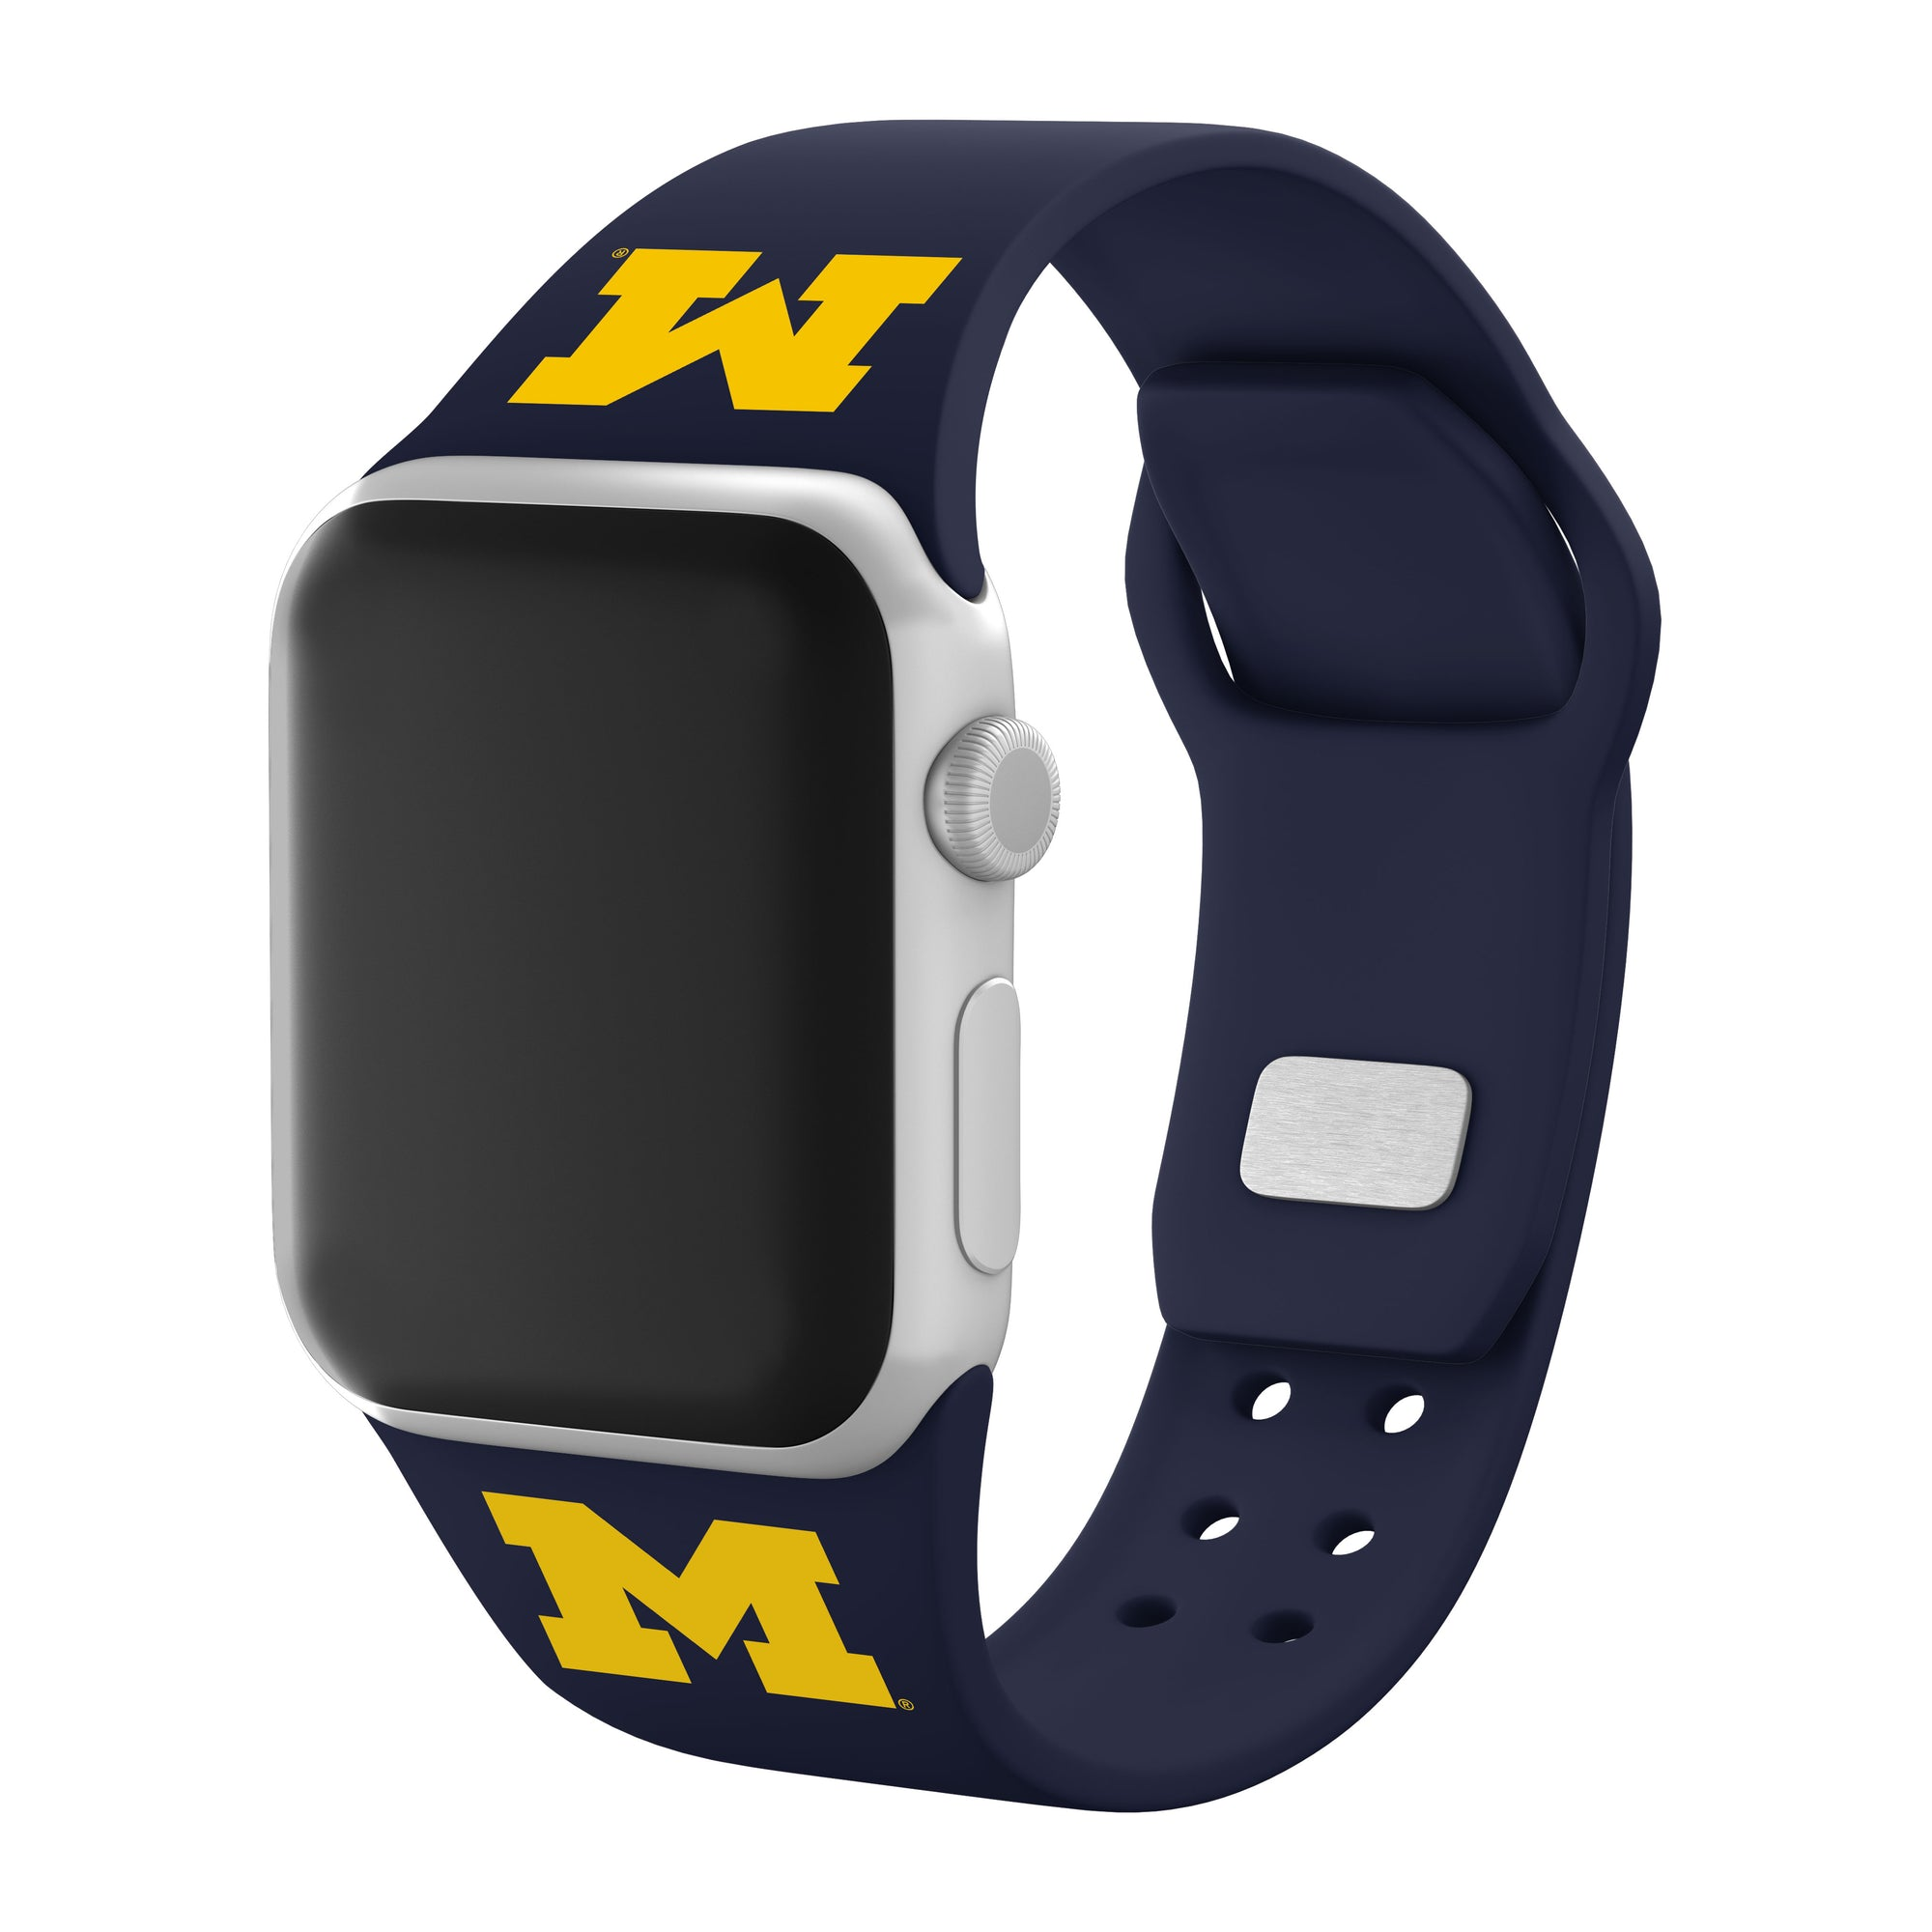 Michigan Wolverines Apple Watch Band